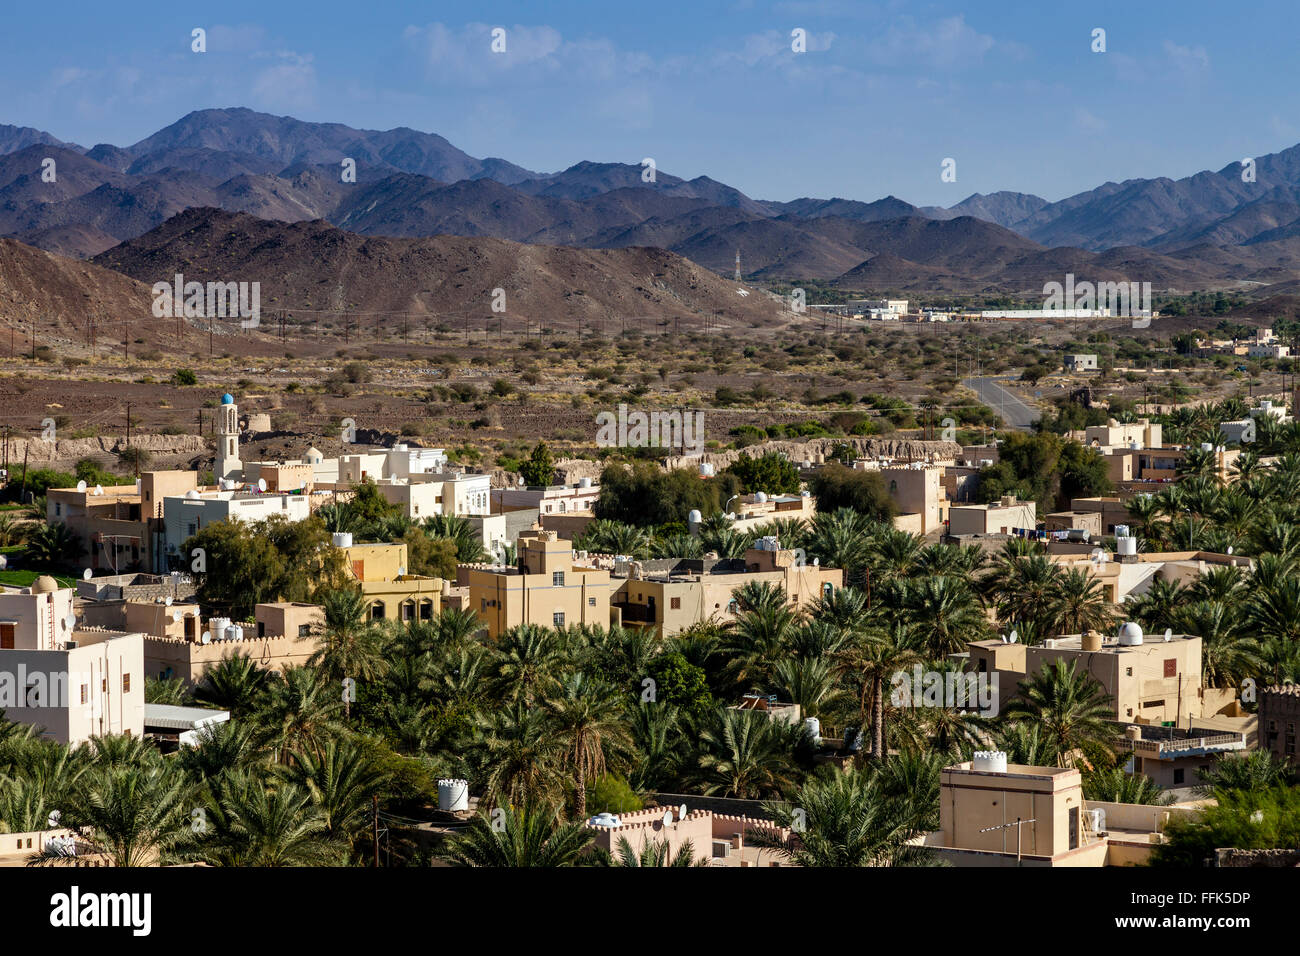 The Town Of Bahla Viewed From The Fort, Ad Dakhiliyah Region; Oman - Stock Image